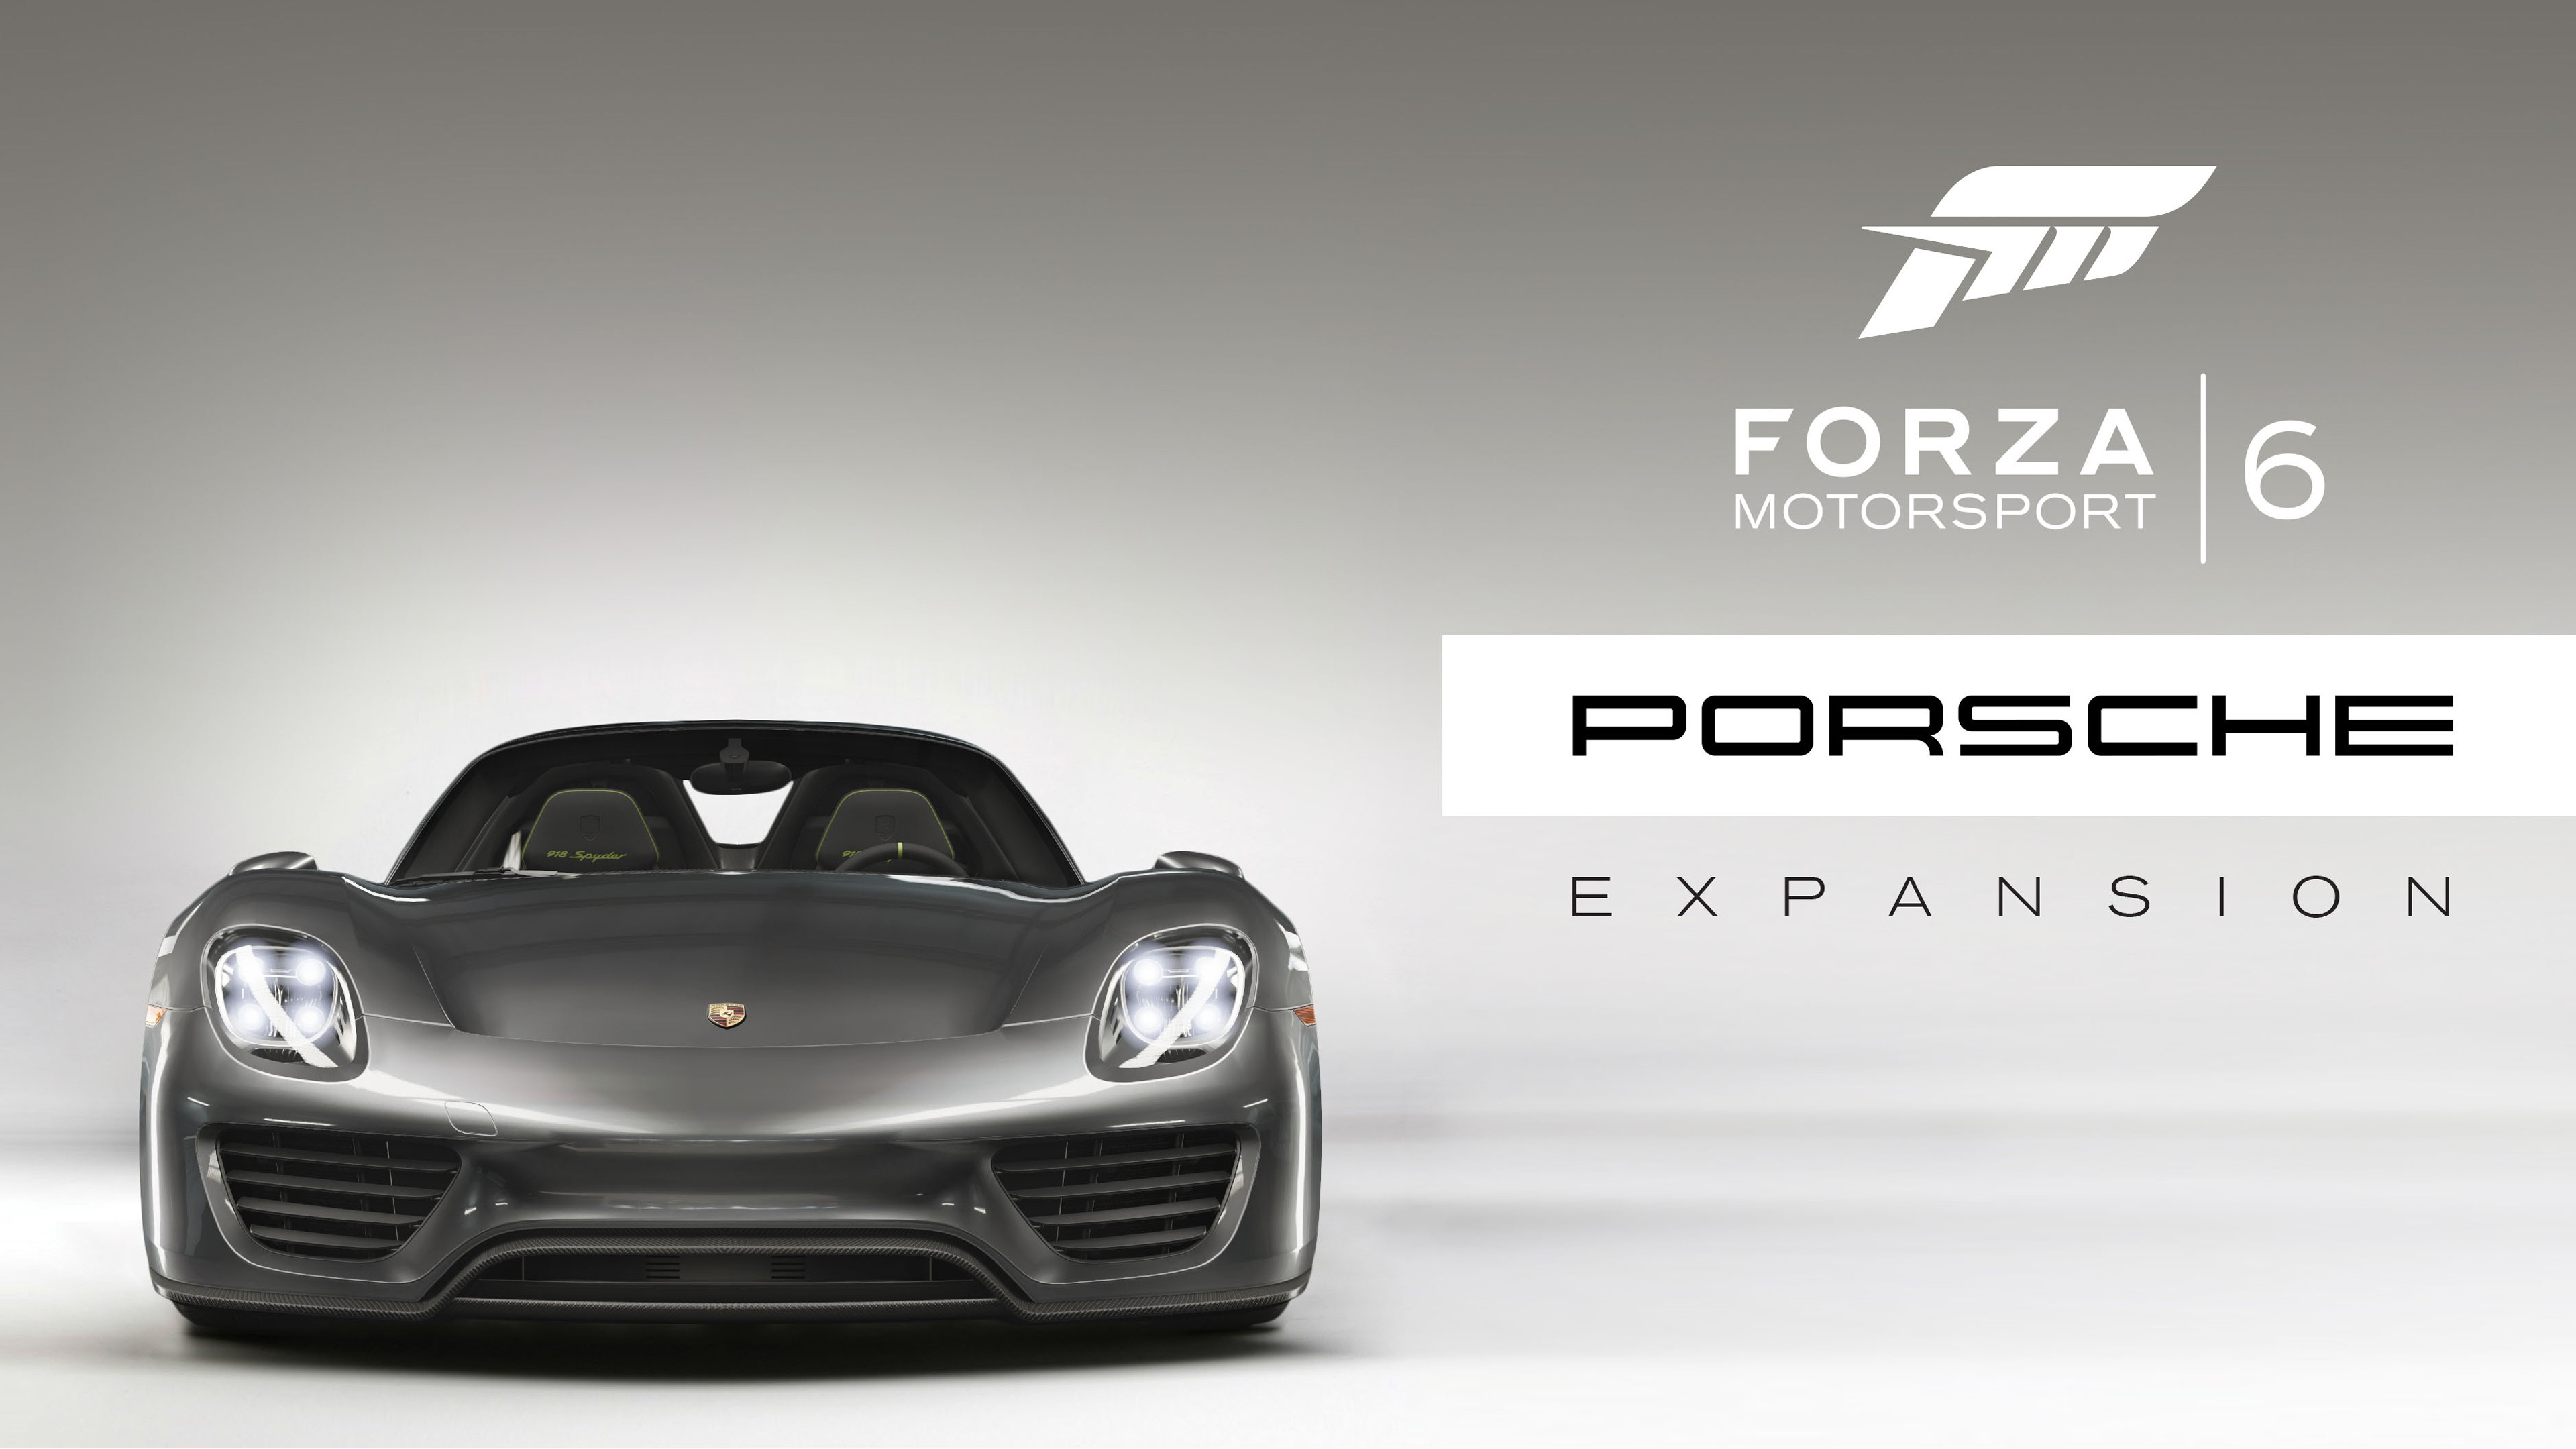 3d Hd Wallpapers For Windows 7 Free Download Forza Motorsport 6 Porsche Expansion Wallpapers Hd